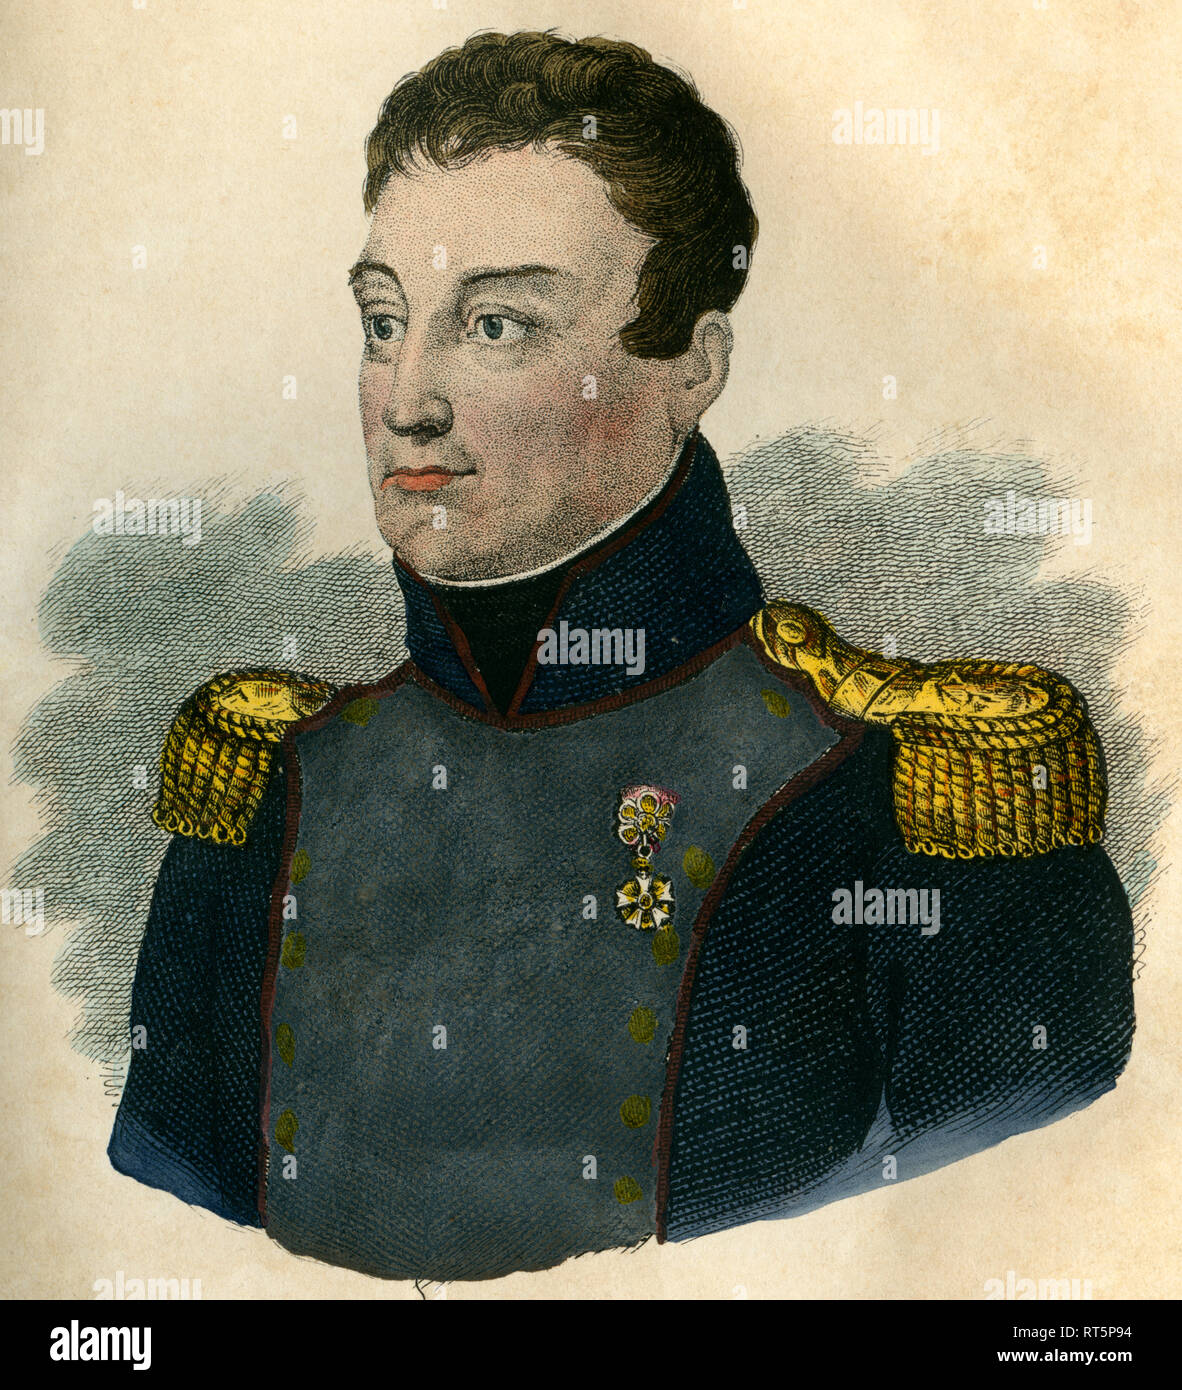 Marquis de Lafayette, french aristocrat, general and politician, lithography from: 'Geschichte Napoleon's von der Wiege bis zum Grabe', (history of Napoleon from the cradle to the grave) by C.T. Heyne, volume 1, Lithographische Anstalt von F.W. Goedsche und Steinmetz, Meissen, published by Goedsche & Comp., Chemnitz, 1840., Additional-Rights-Clearance-Info-Not-Available - Stock Image